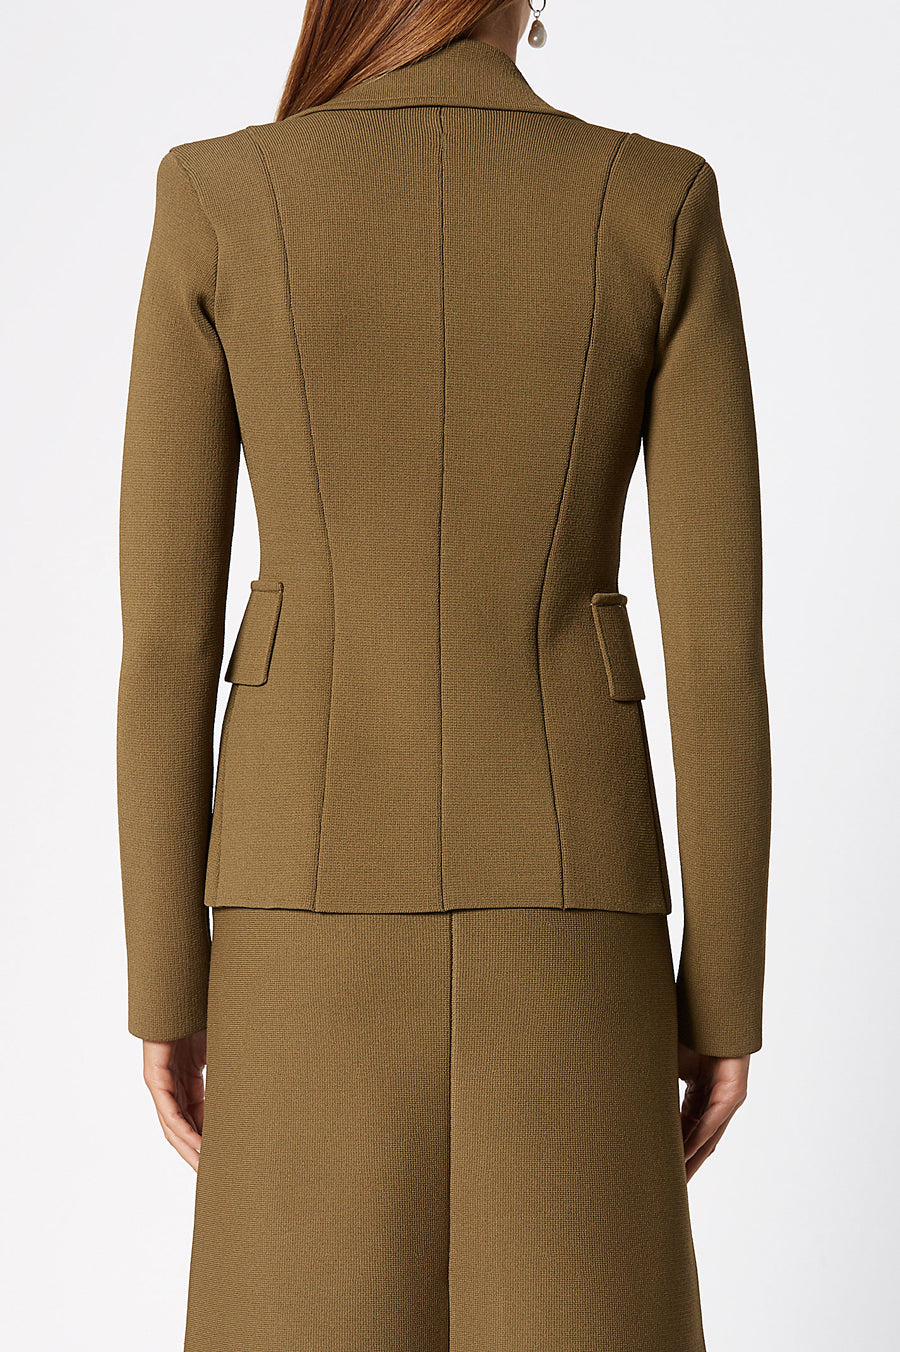 Crepe Knit Tailored Jacket, sharp lapels, shoulder pads, double breasted silhouette, Color Military